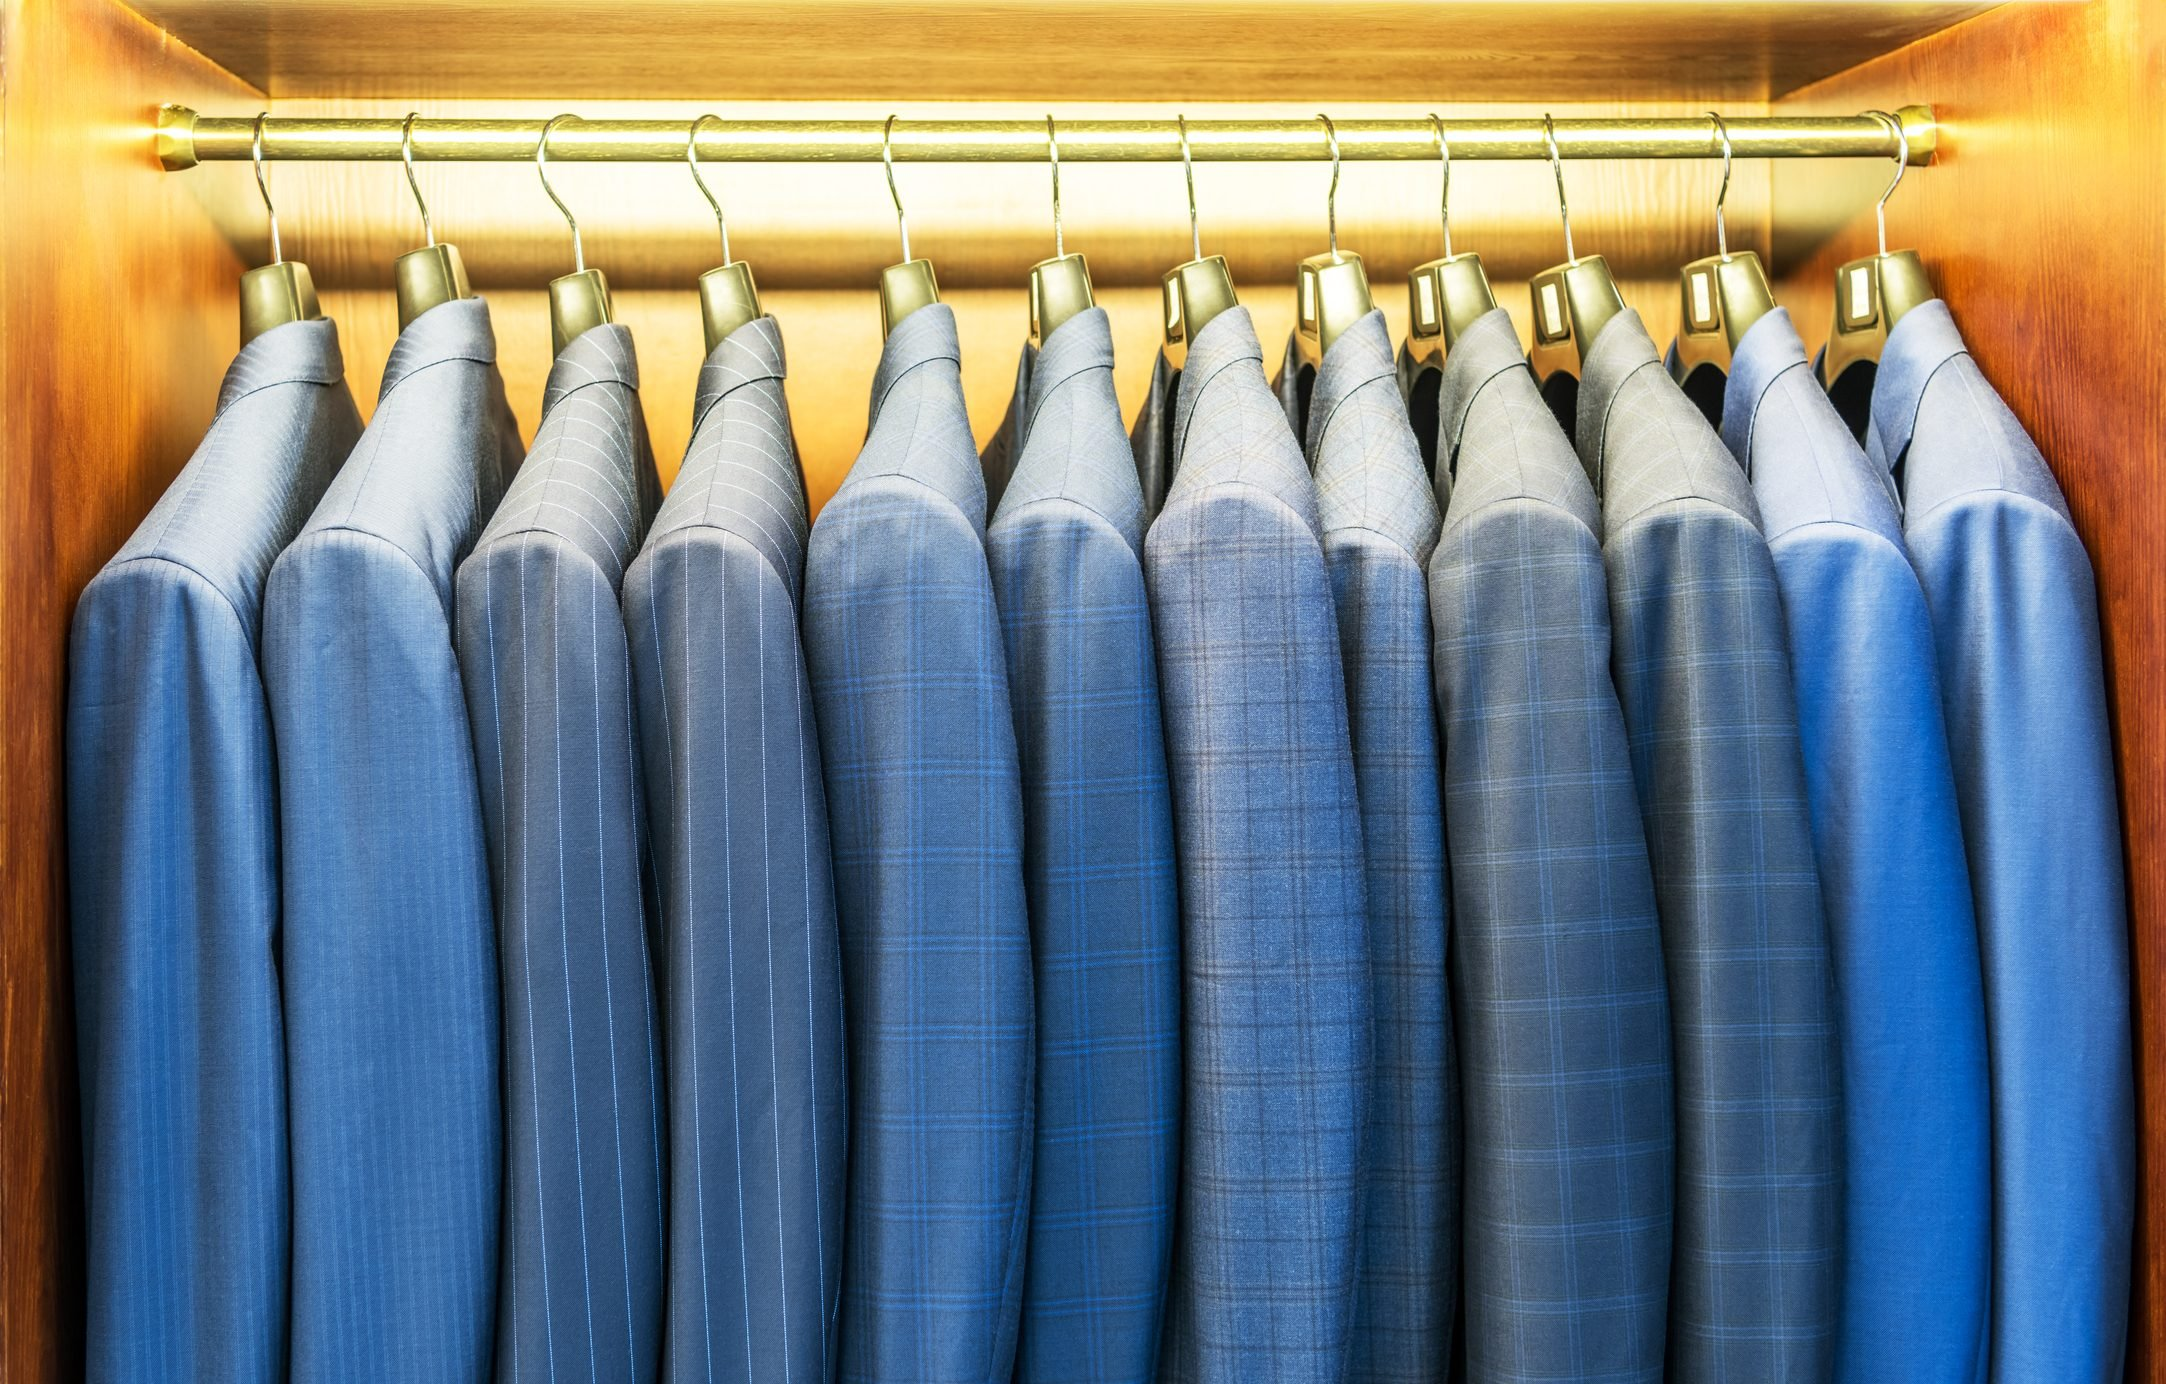 Suit Jackets In A Row